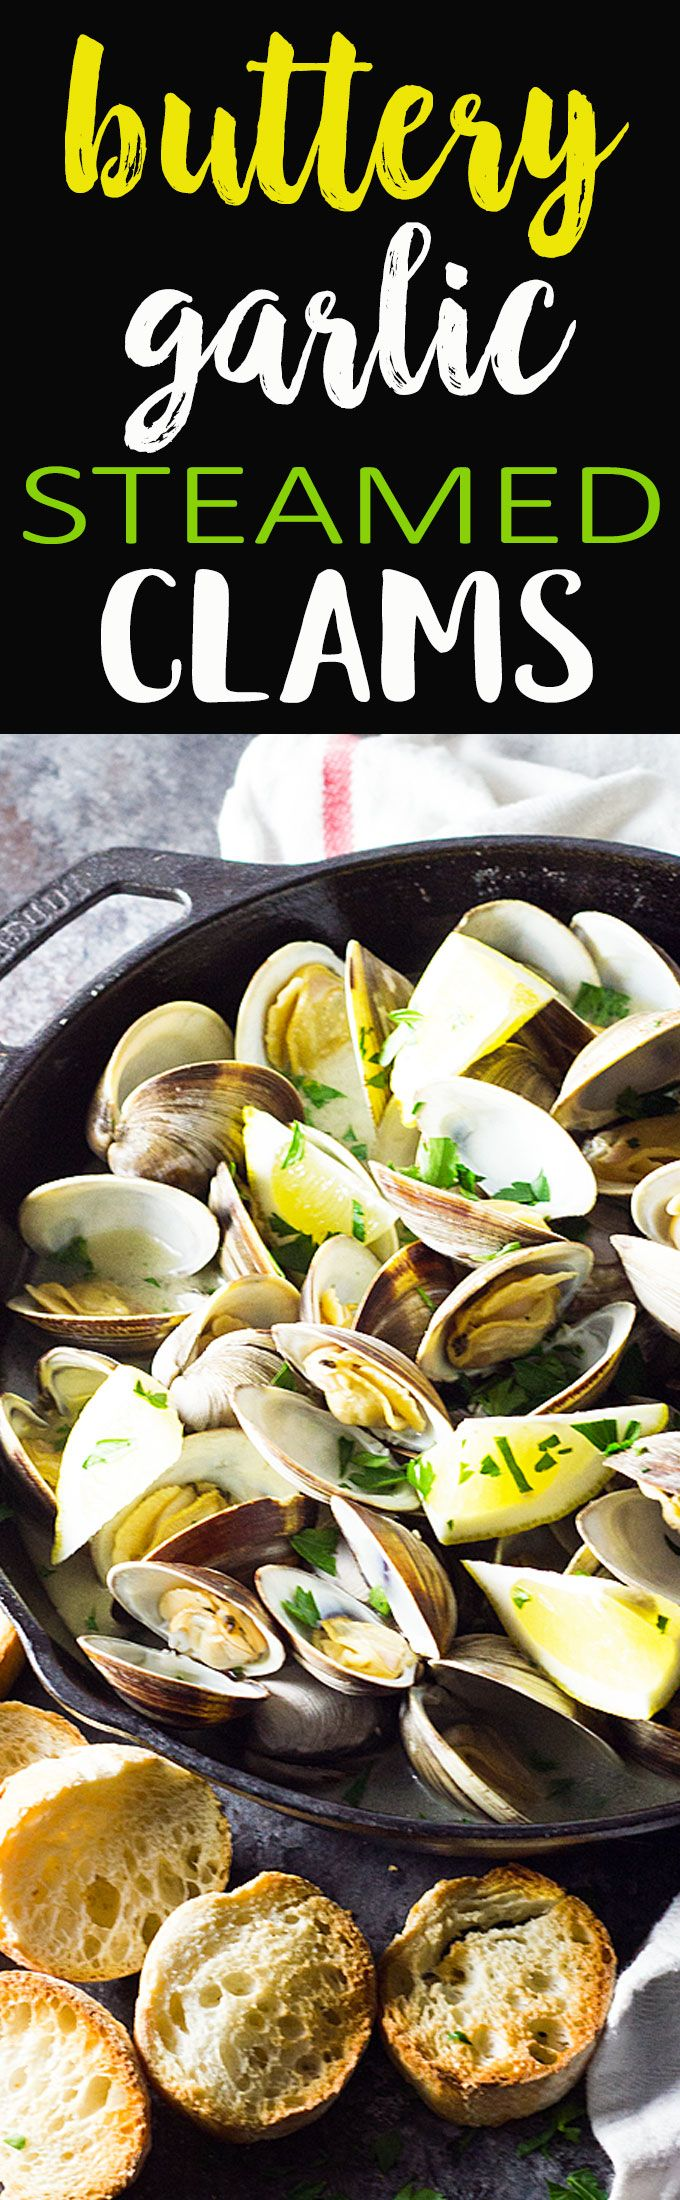 Just 15 minutes is all it takes for these steamed clams in a velvety, buttery garlic white wine sauce!  #ad